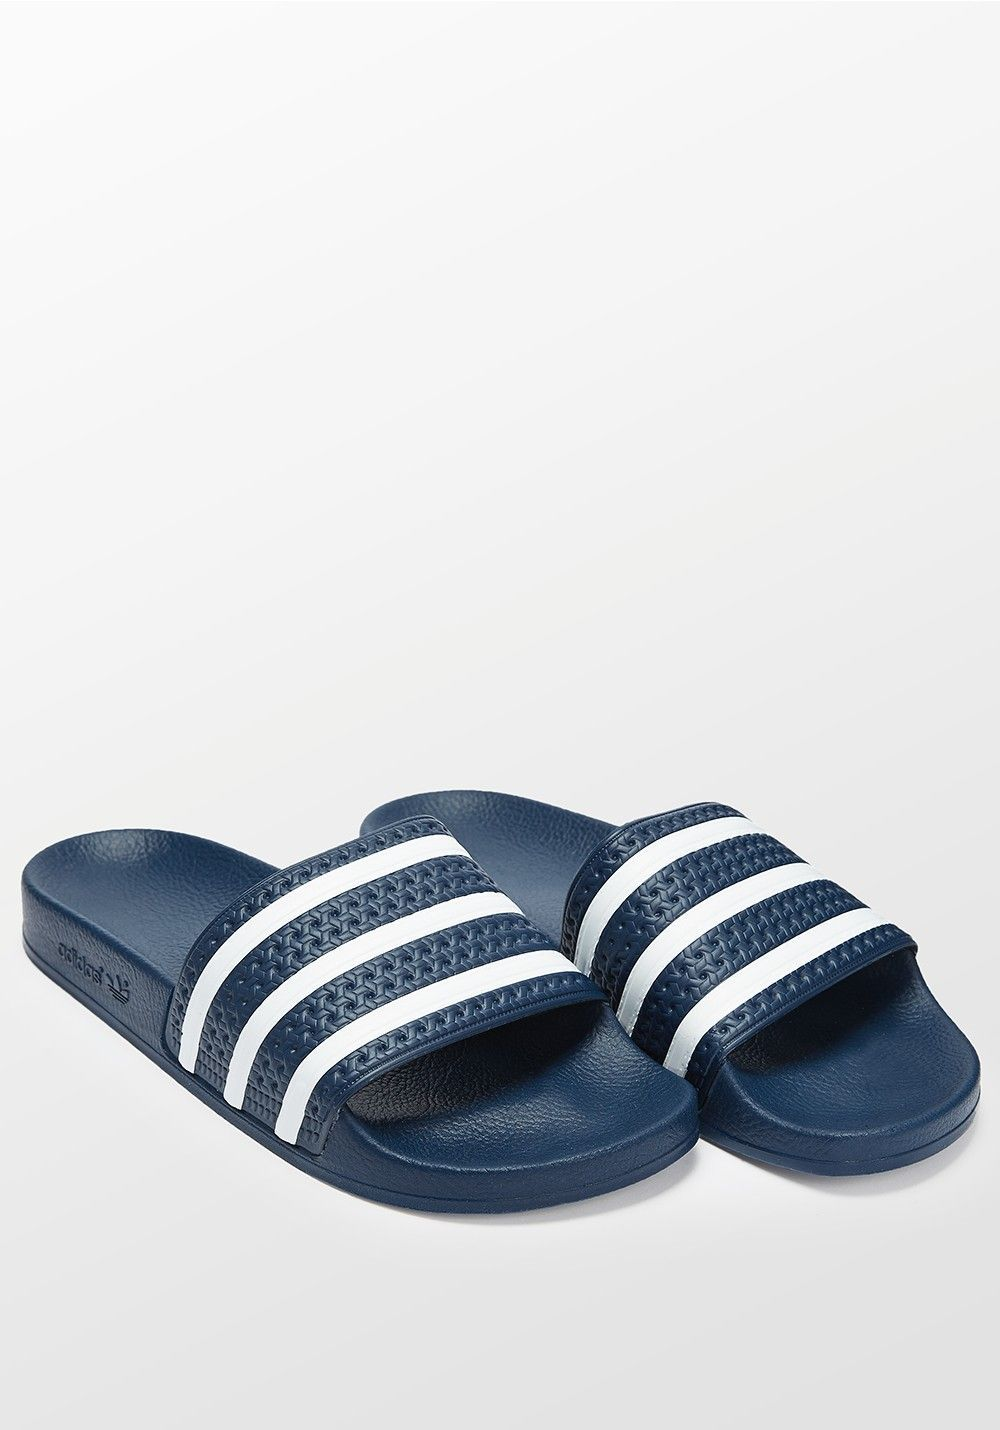 best website 7446c bf1e8 Image result for adidas slides blue and white